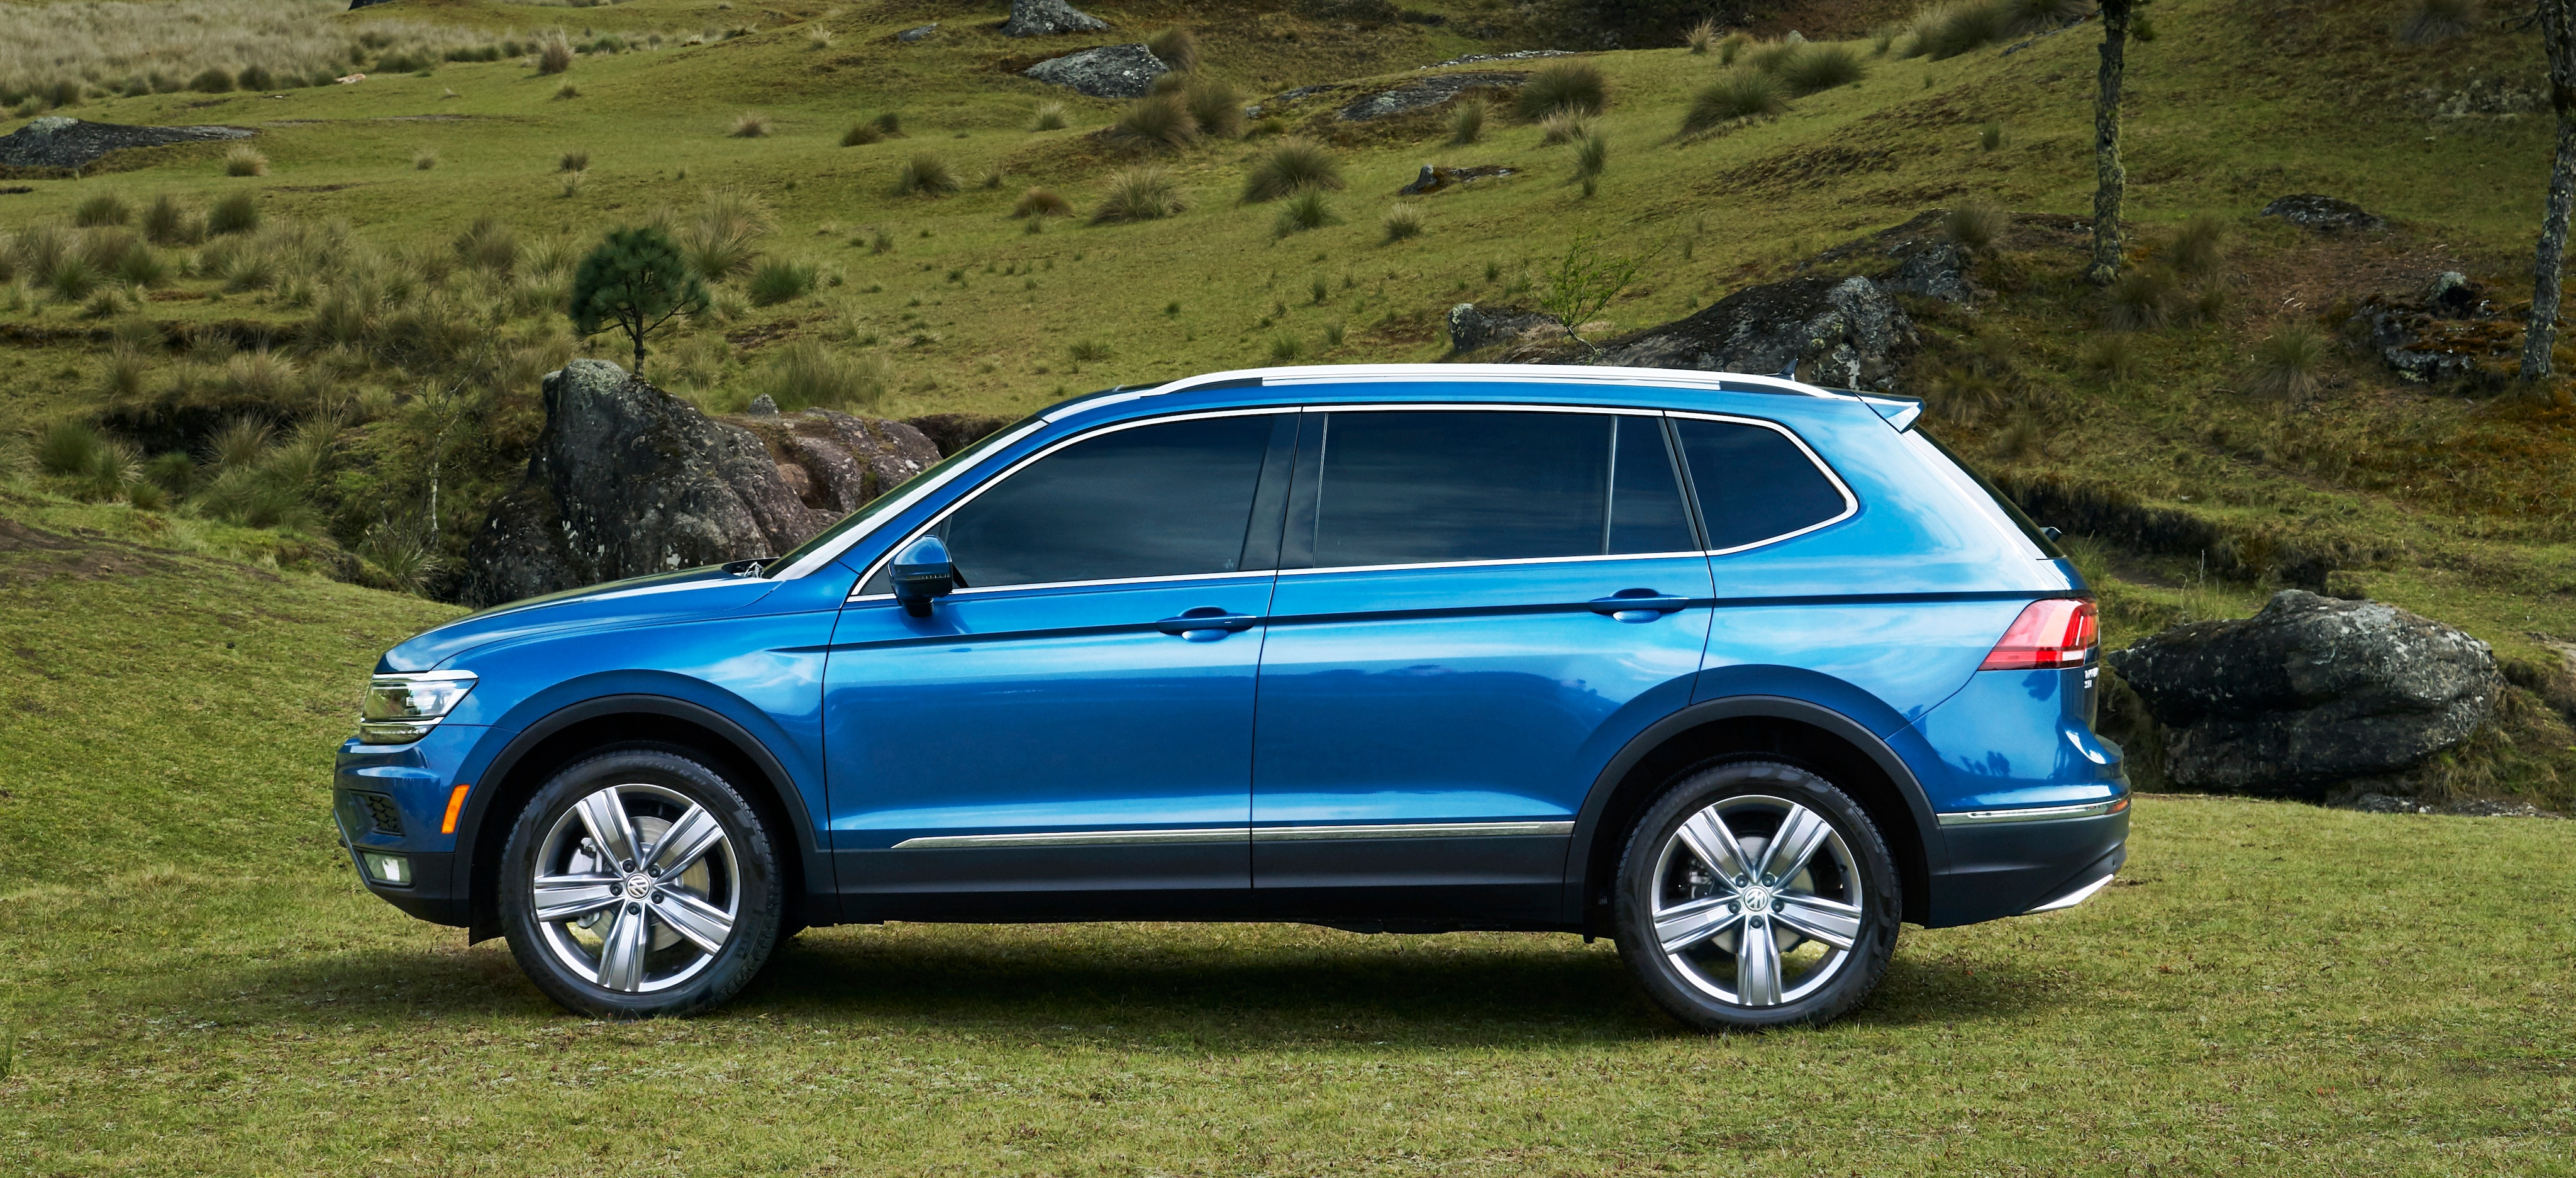 The 2018 Volkswagen Tiguan A Crossover For All Seasons In Roseville California